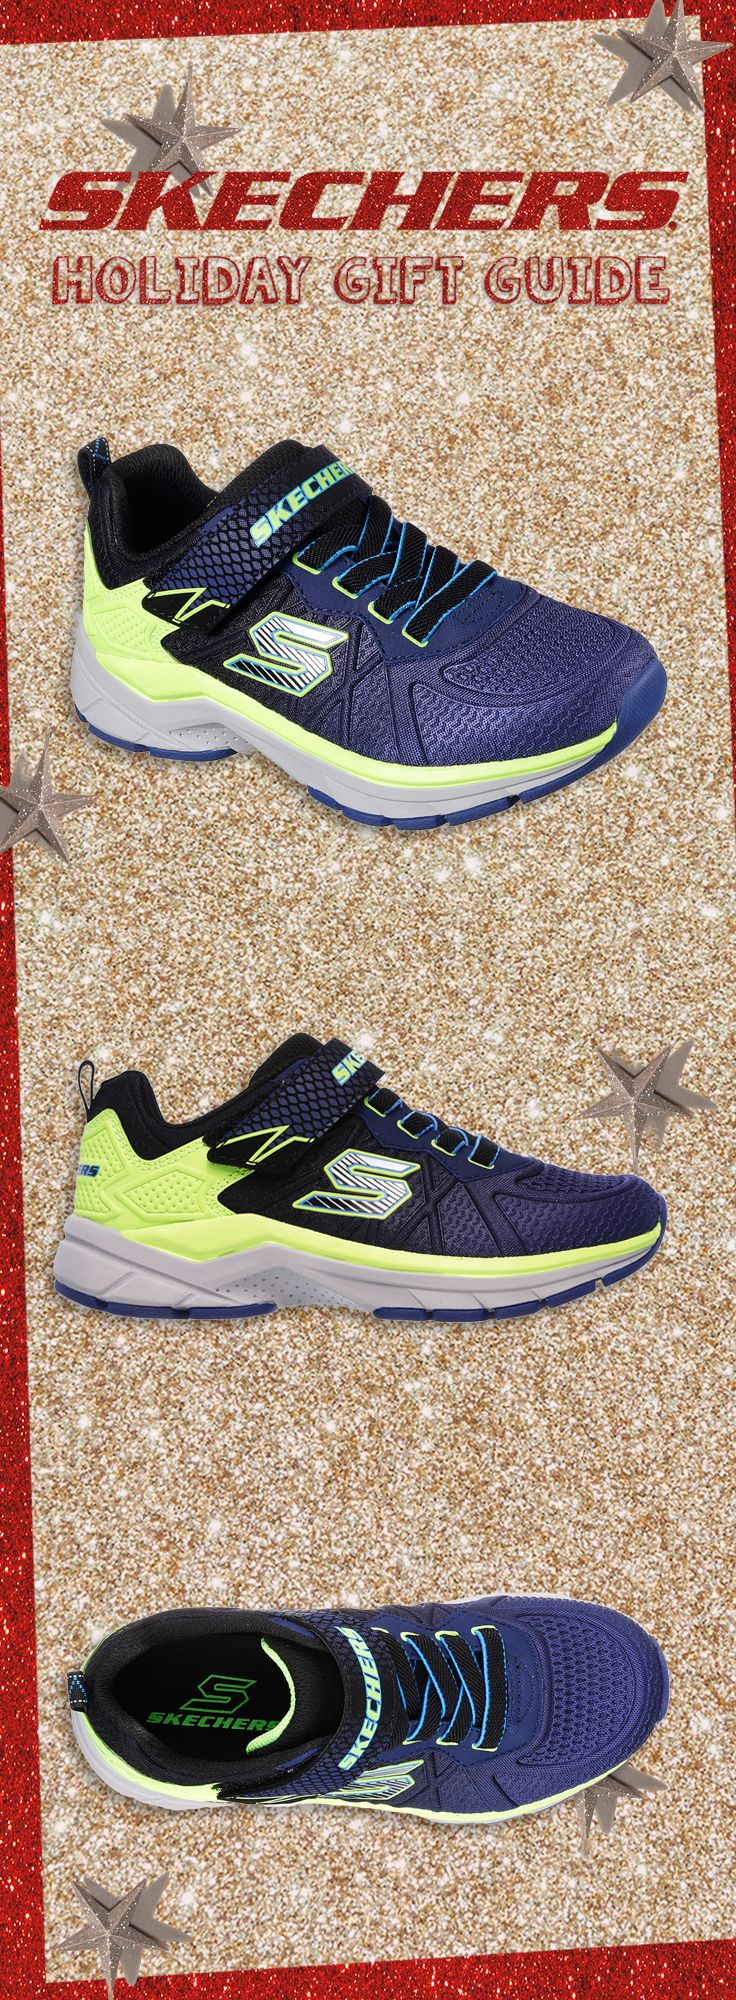 Keep his style cool and sporty for the holidays with the SKECHERS Ultrasonix shoe. #SKECHERSkids